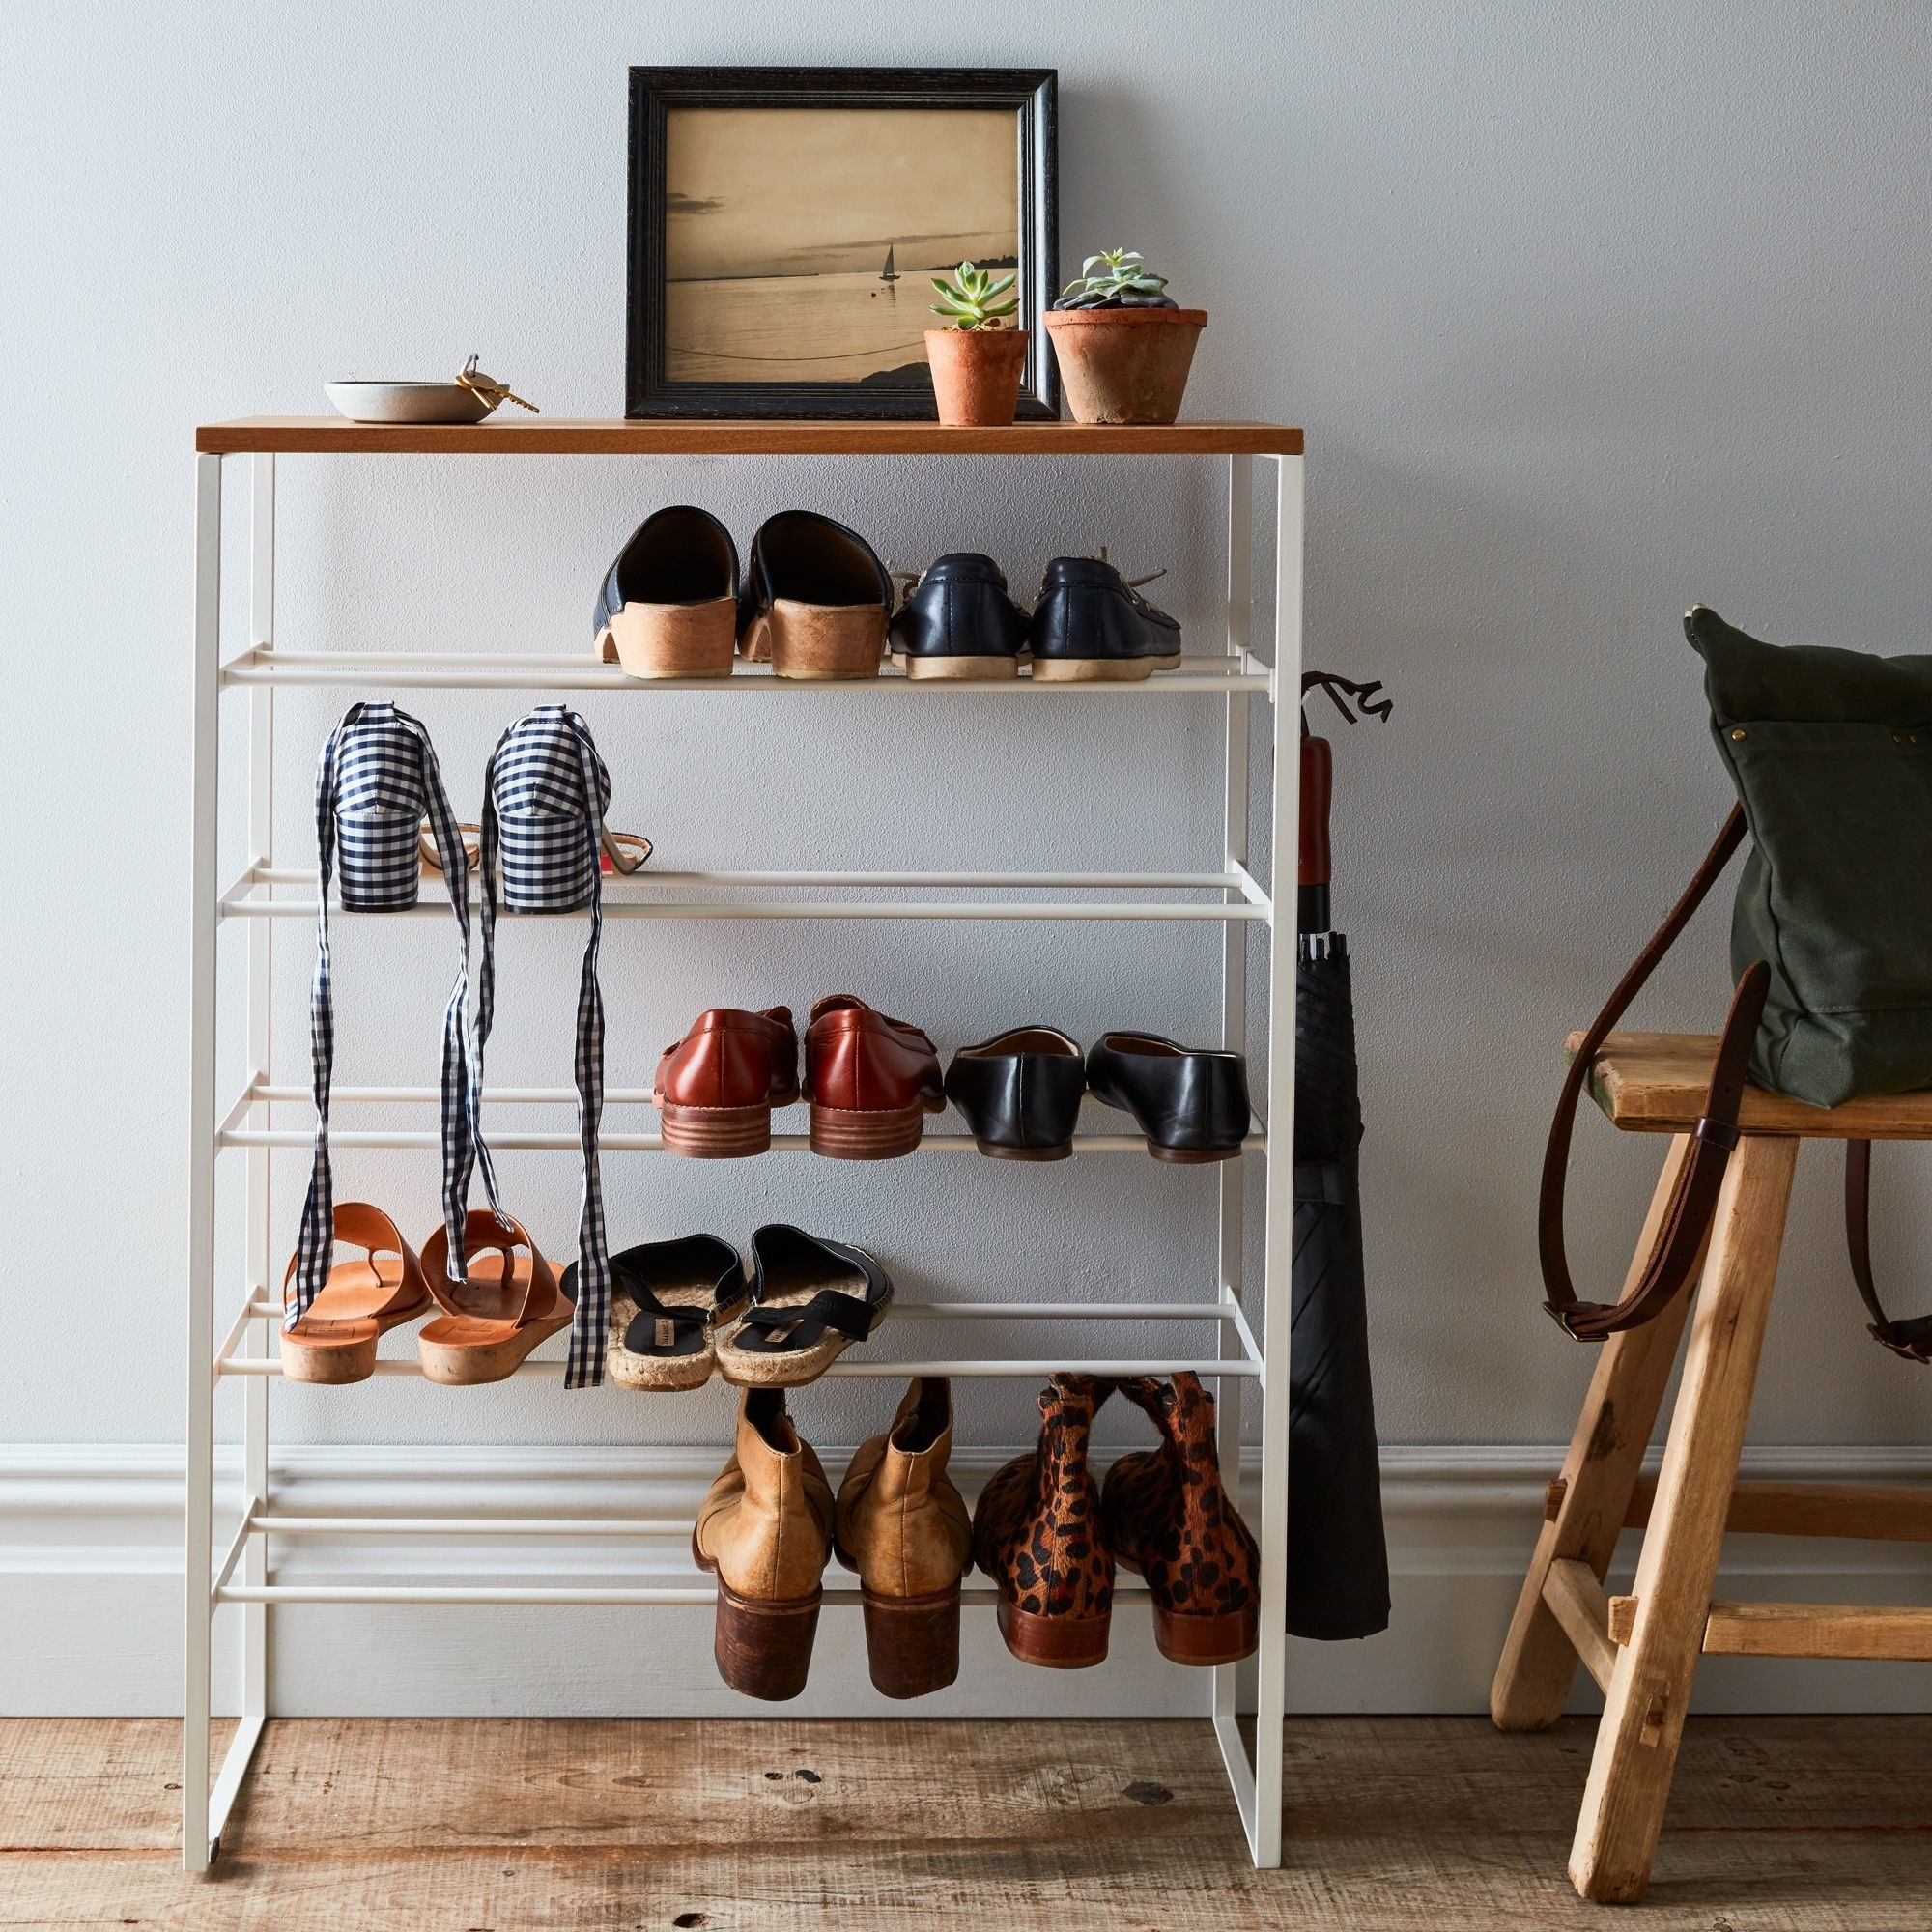 Best Shoe Organizers To Marie Kondo Your Life In 2020